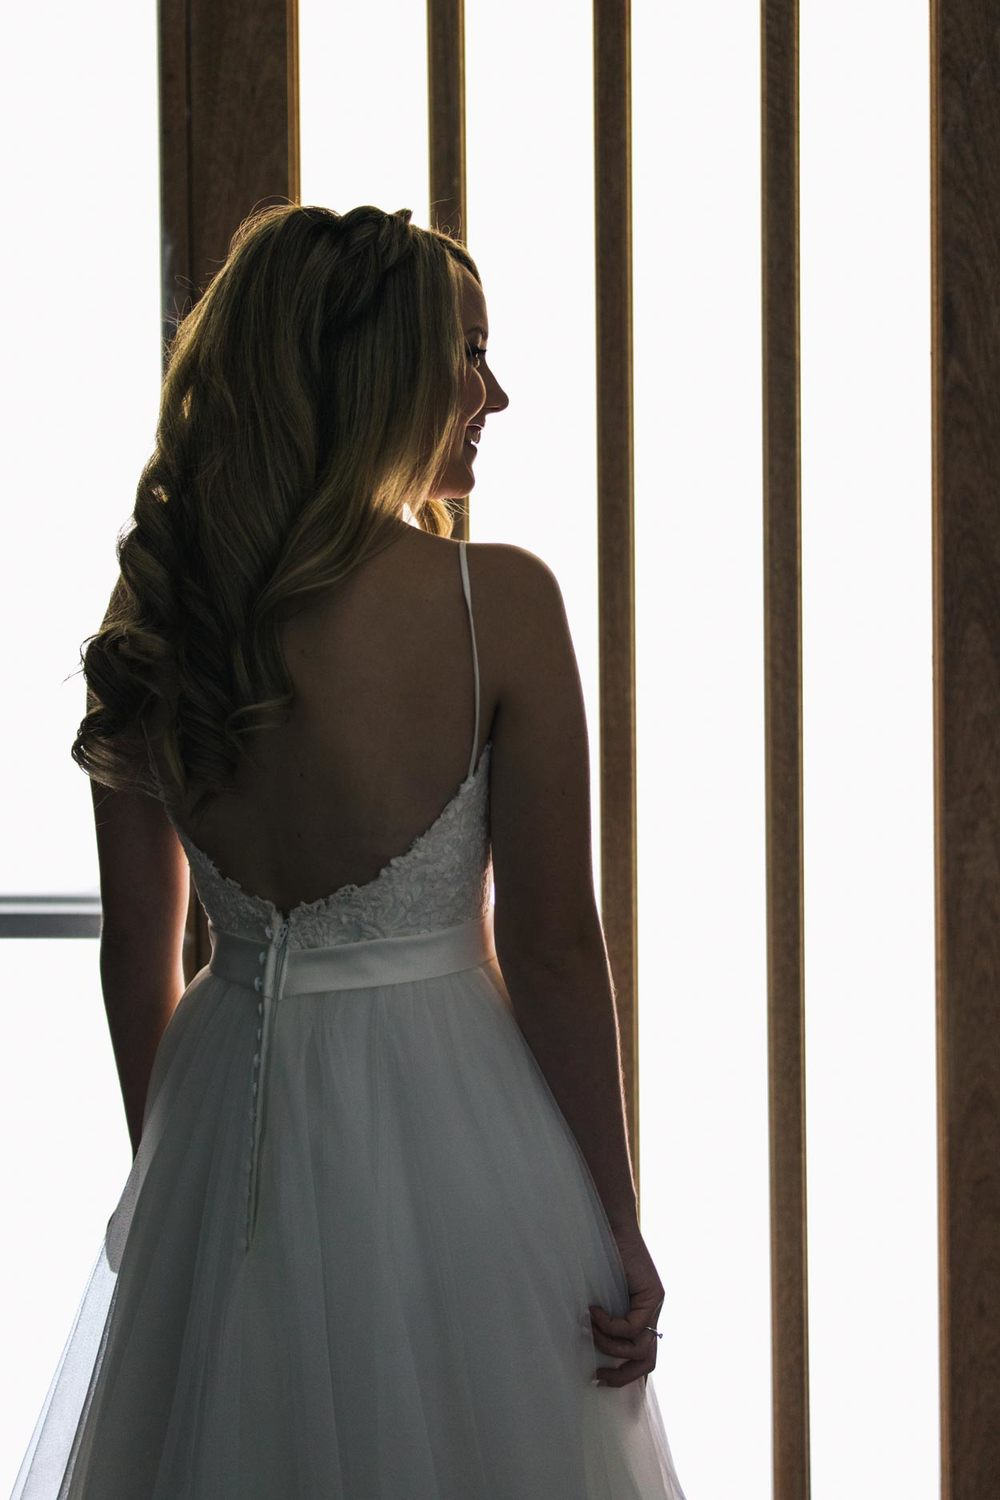 Ferrari Wedding Dress, Cooroy - Sunshine Coast, Australian Photographer